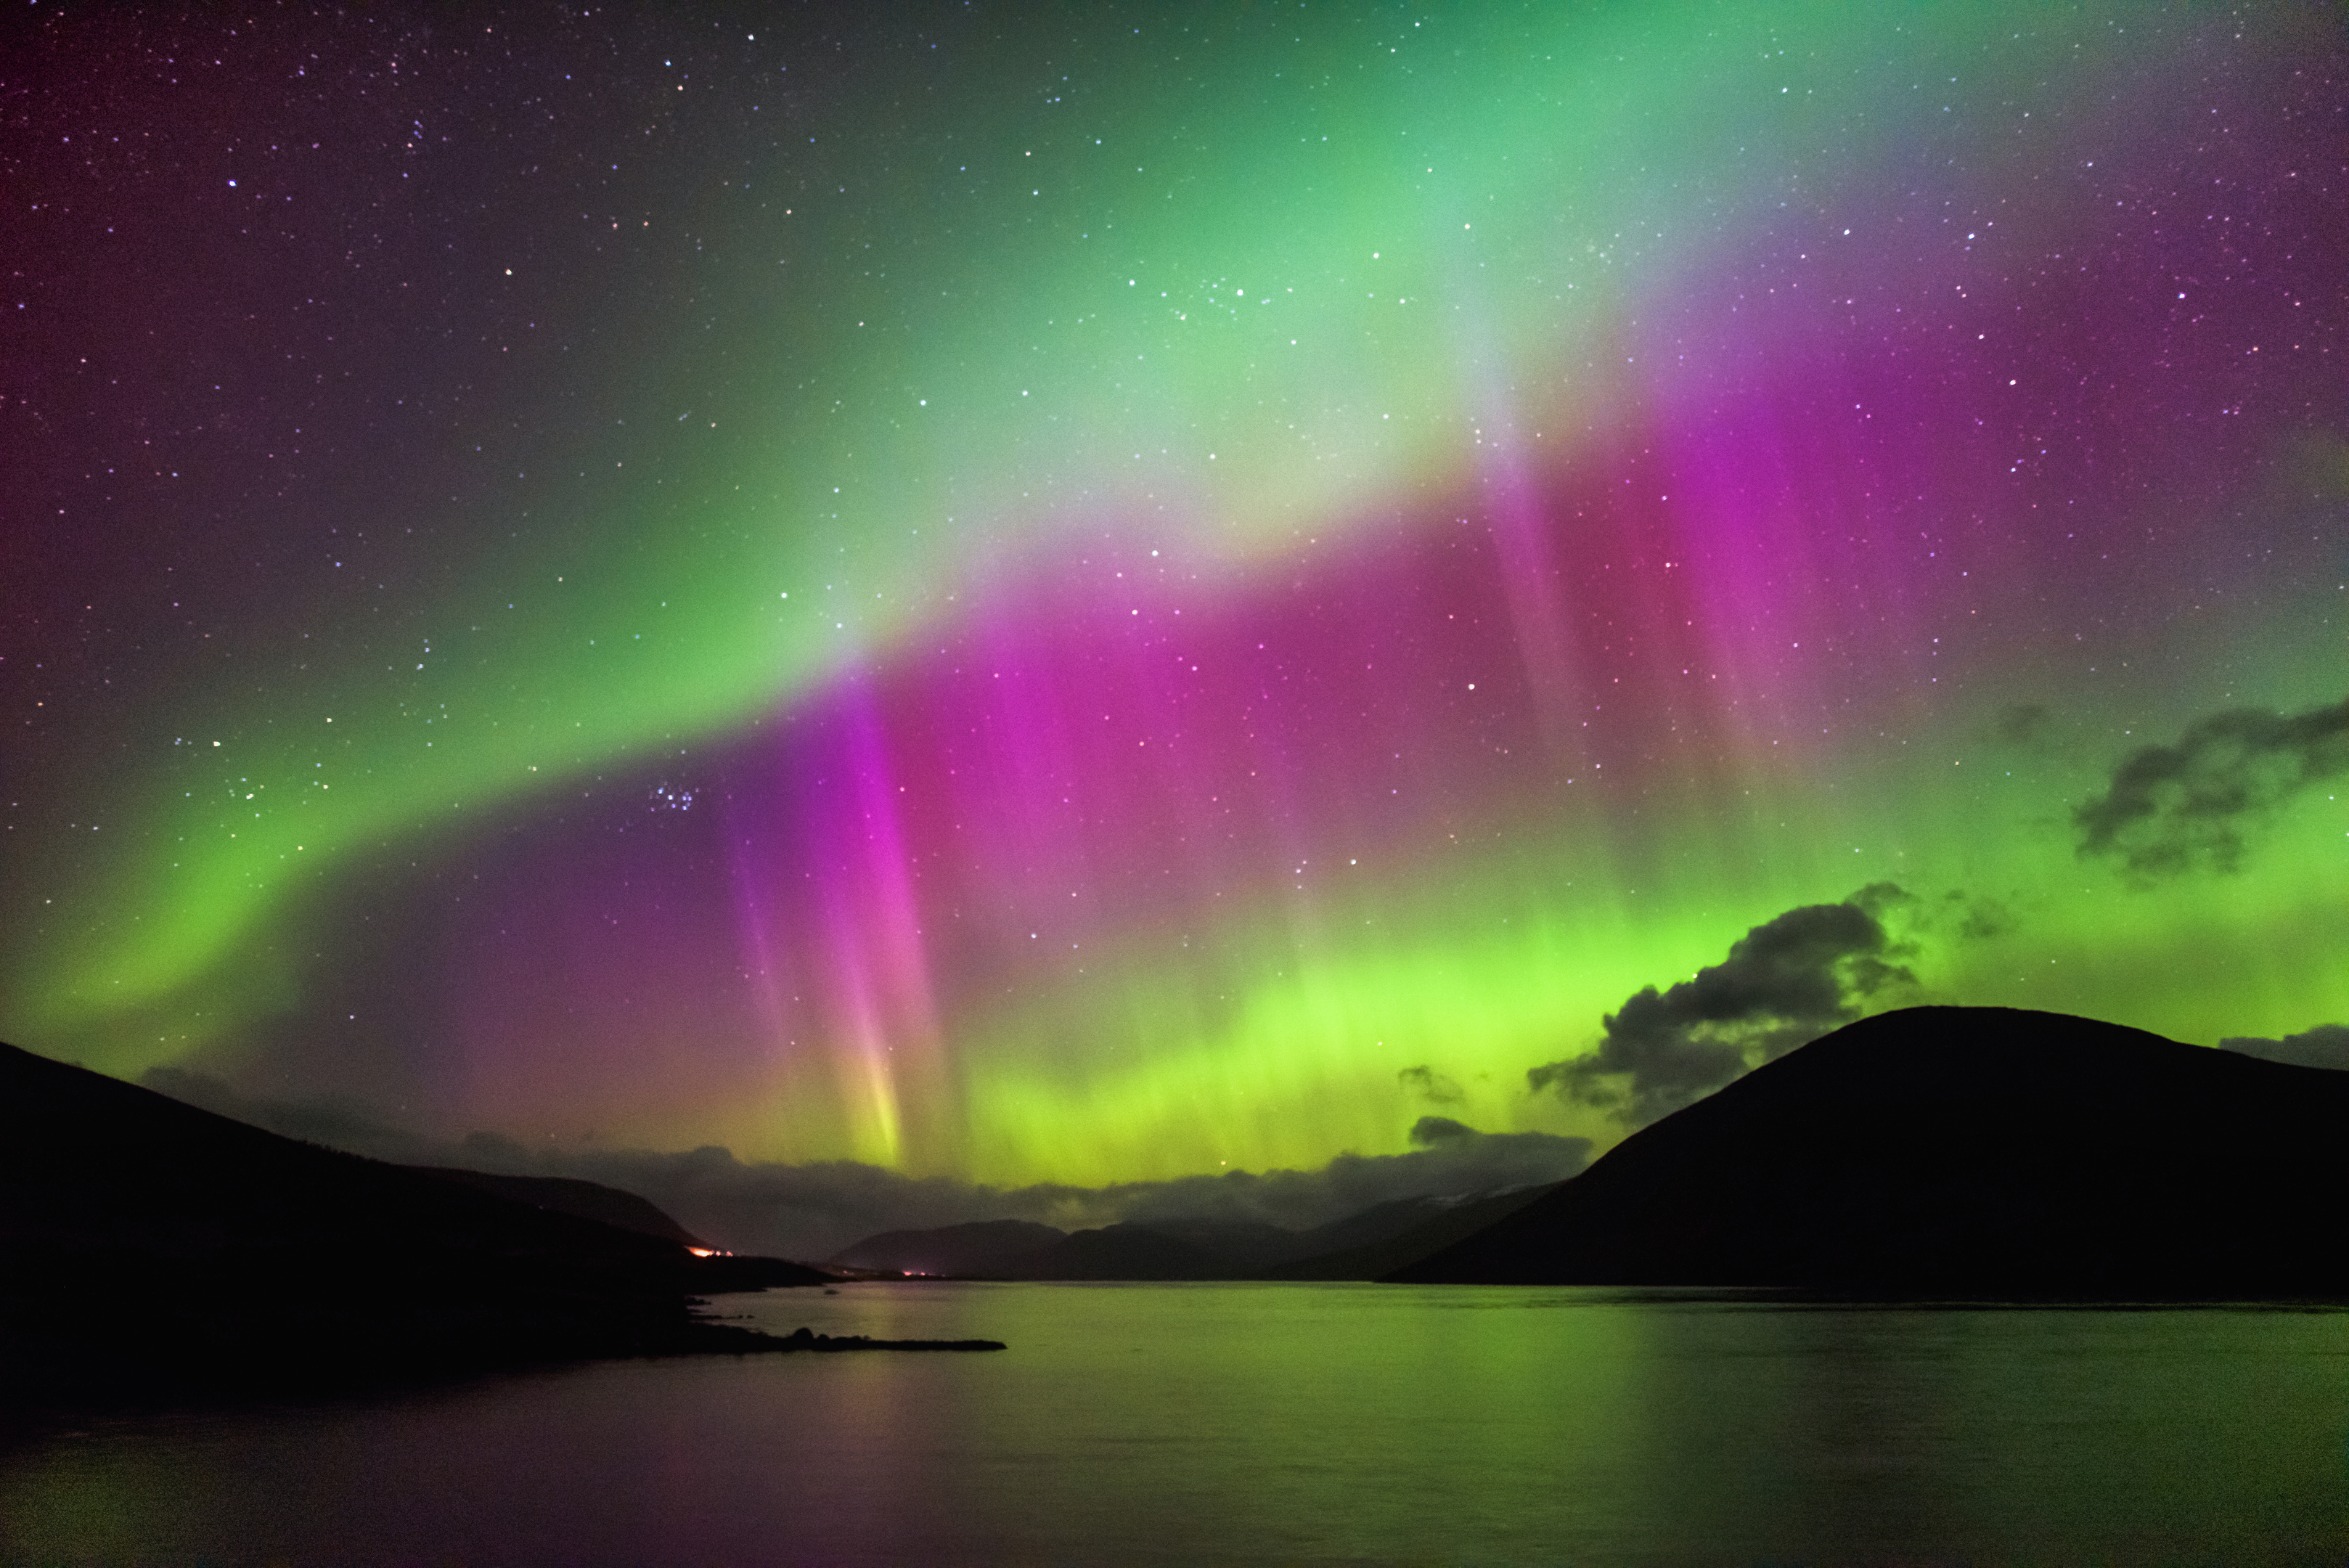 The Aurora Borealis, also known as the Northern Lights, could be visible in parts of Scotland tonight (iStock)